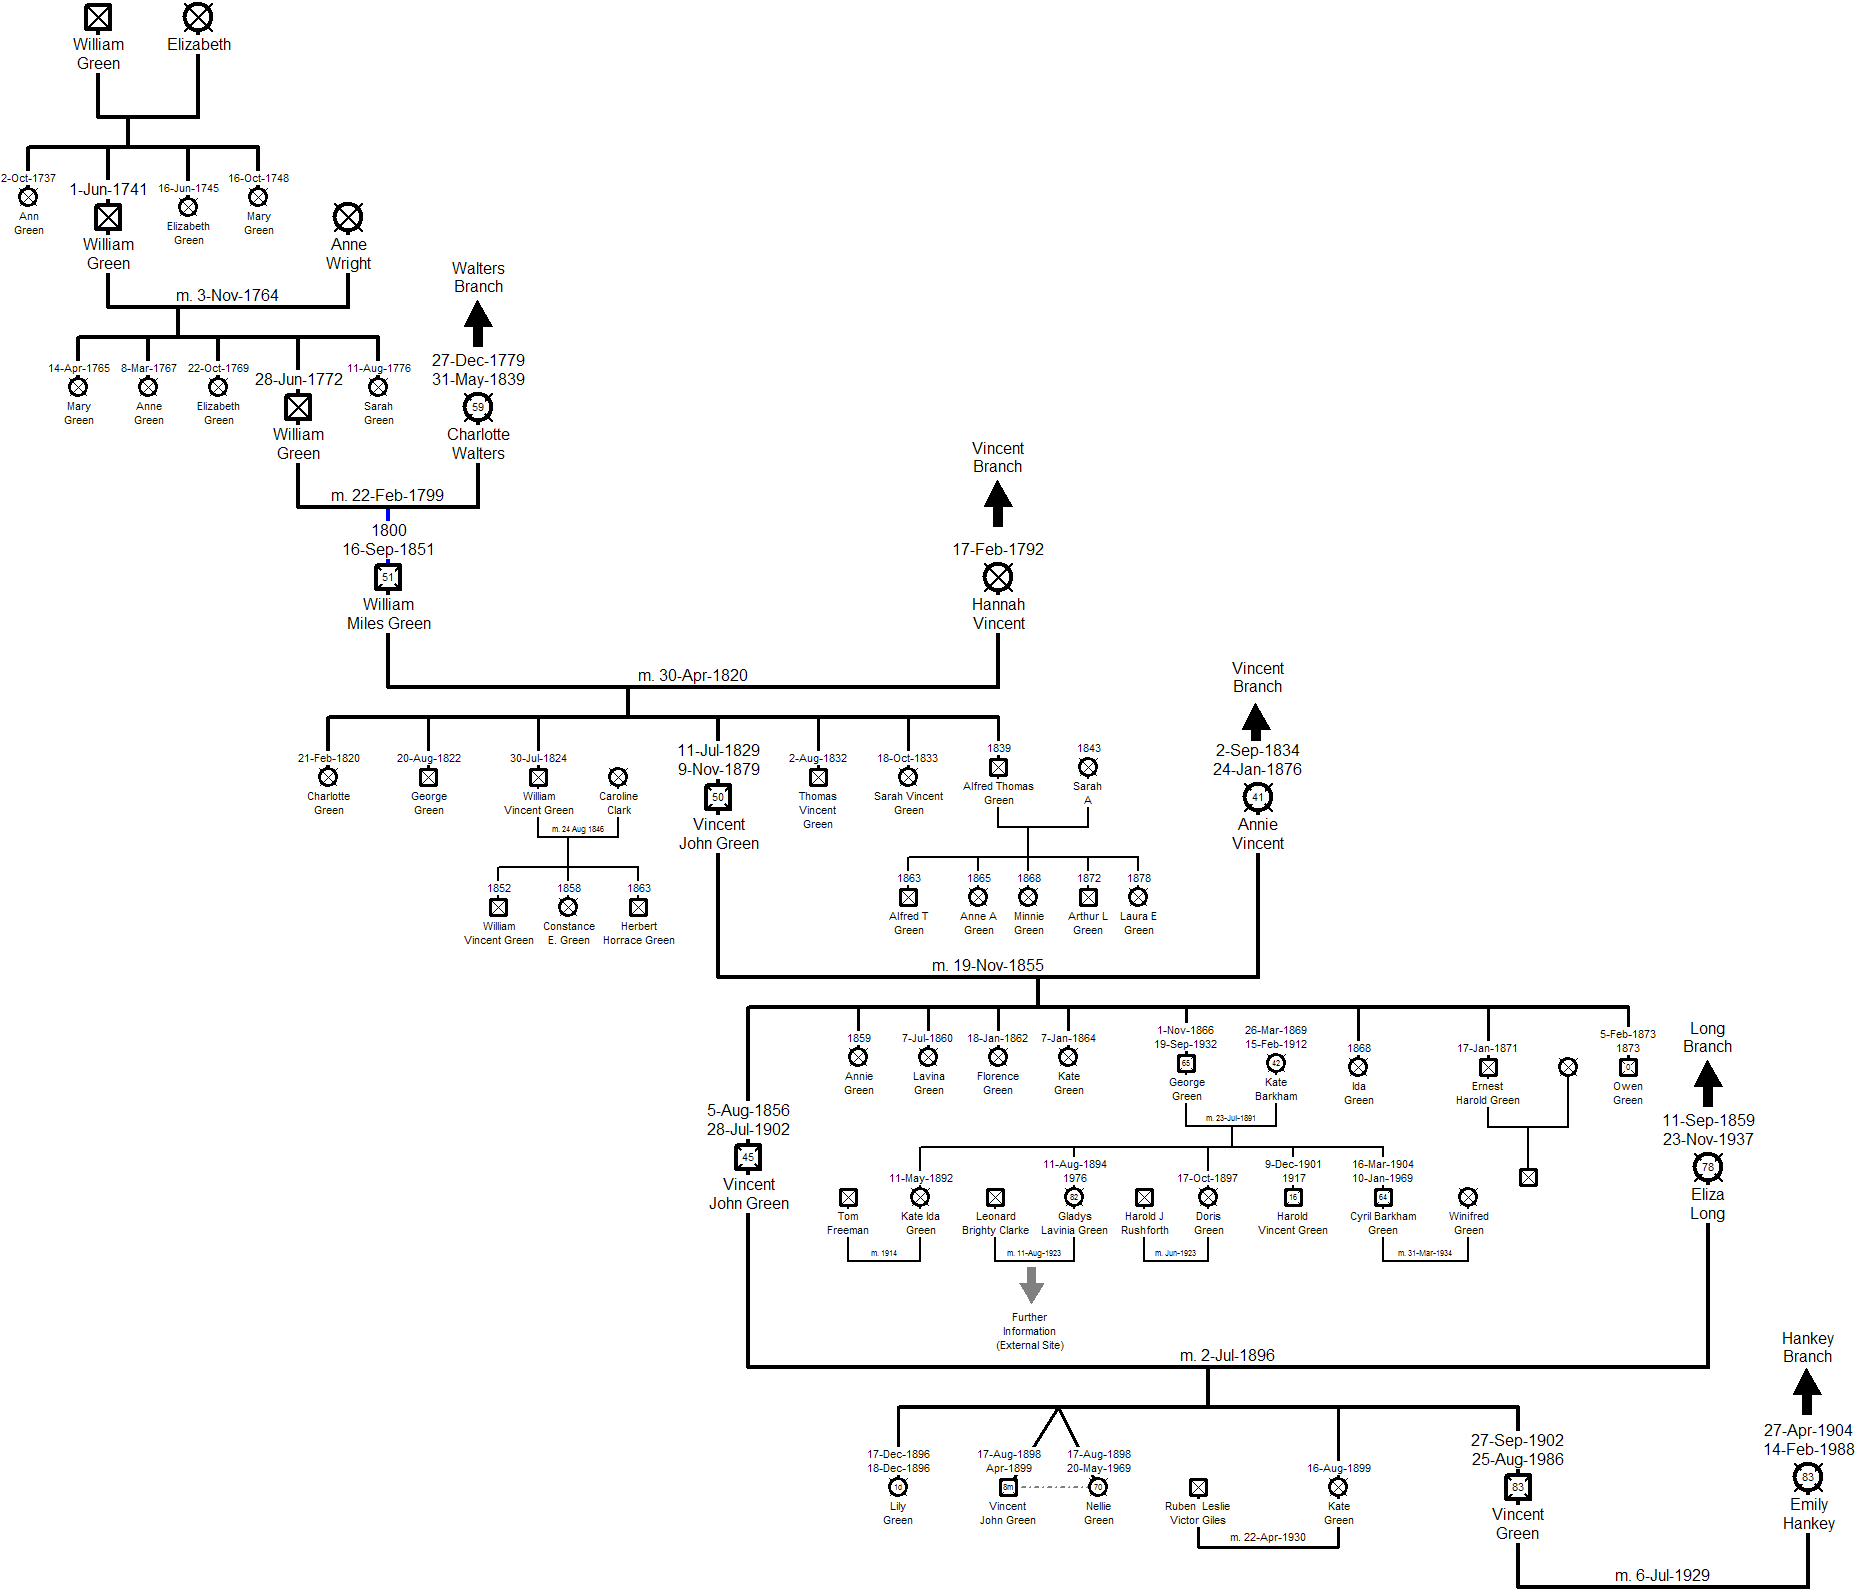 green branch family tree and history